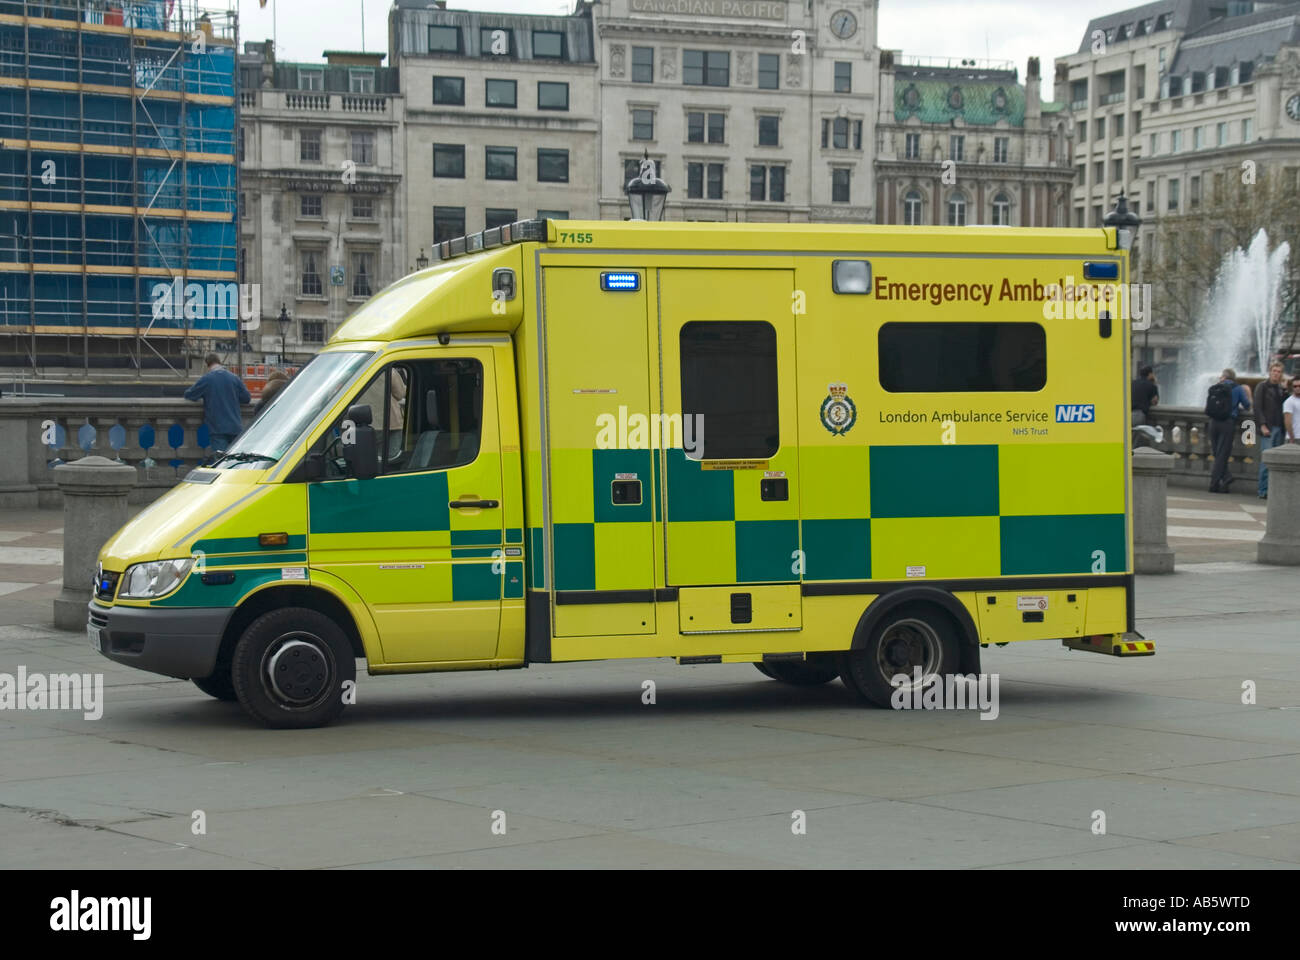 Trafalgar Square ambulance from the London Ambulance Service attending a 999 incident with patient being treated inside vehicle - Stock Image